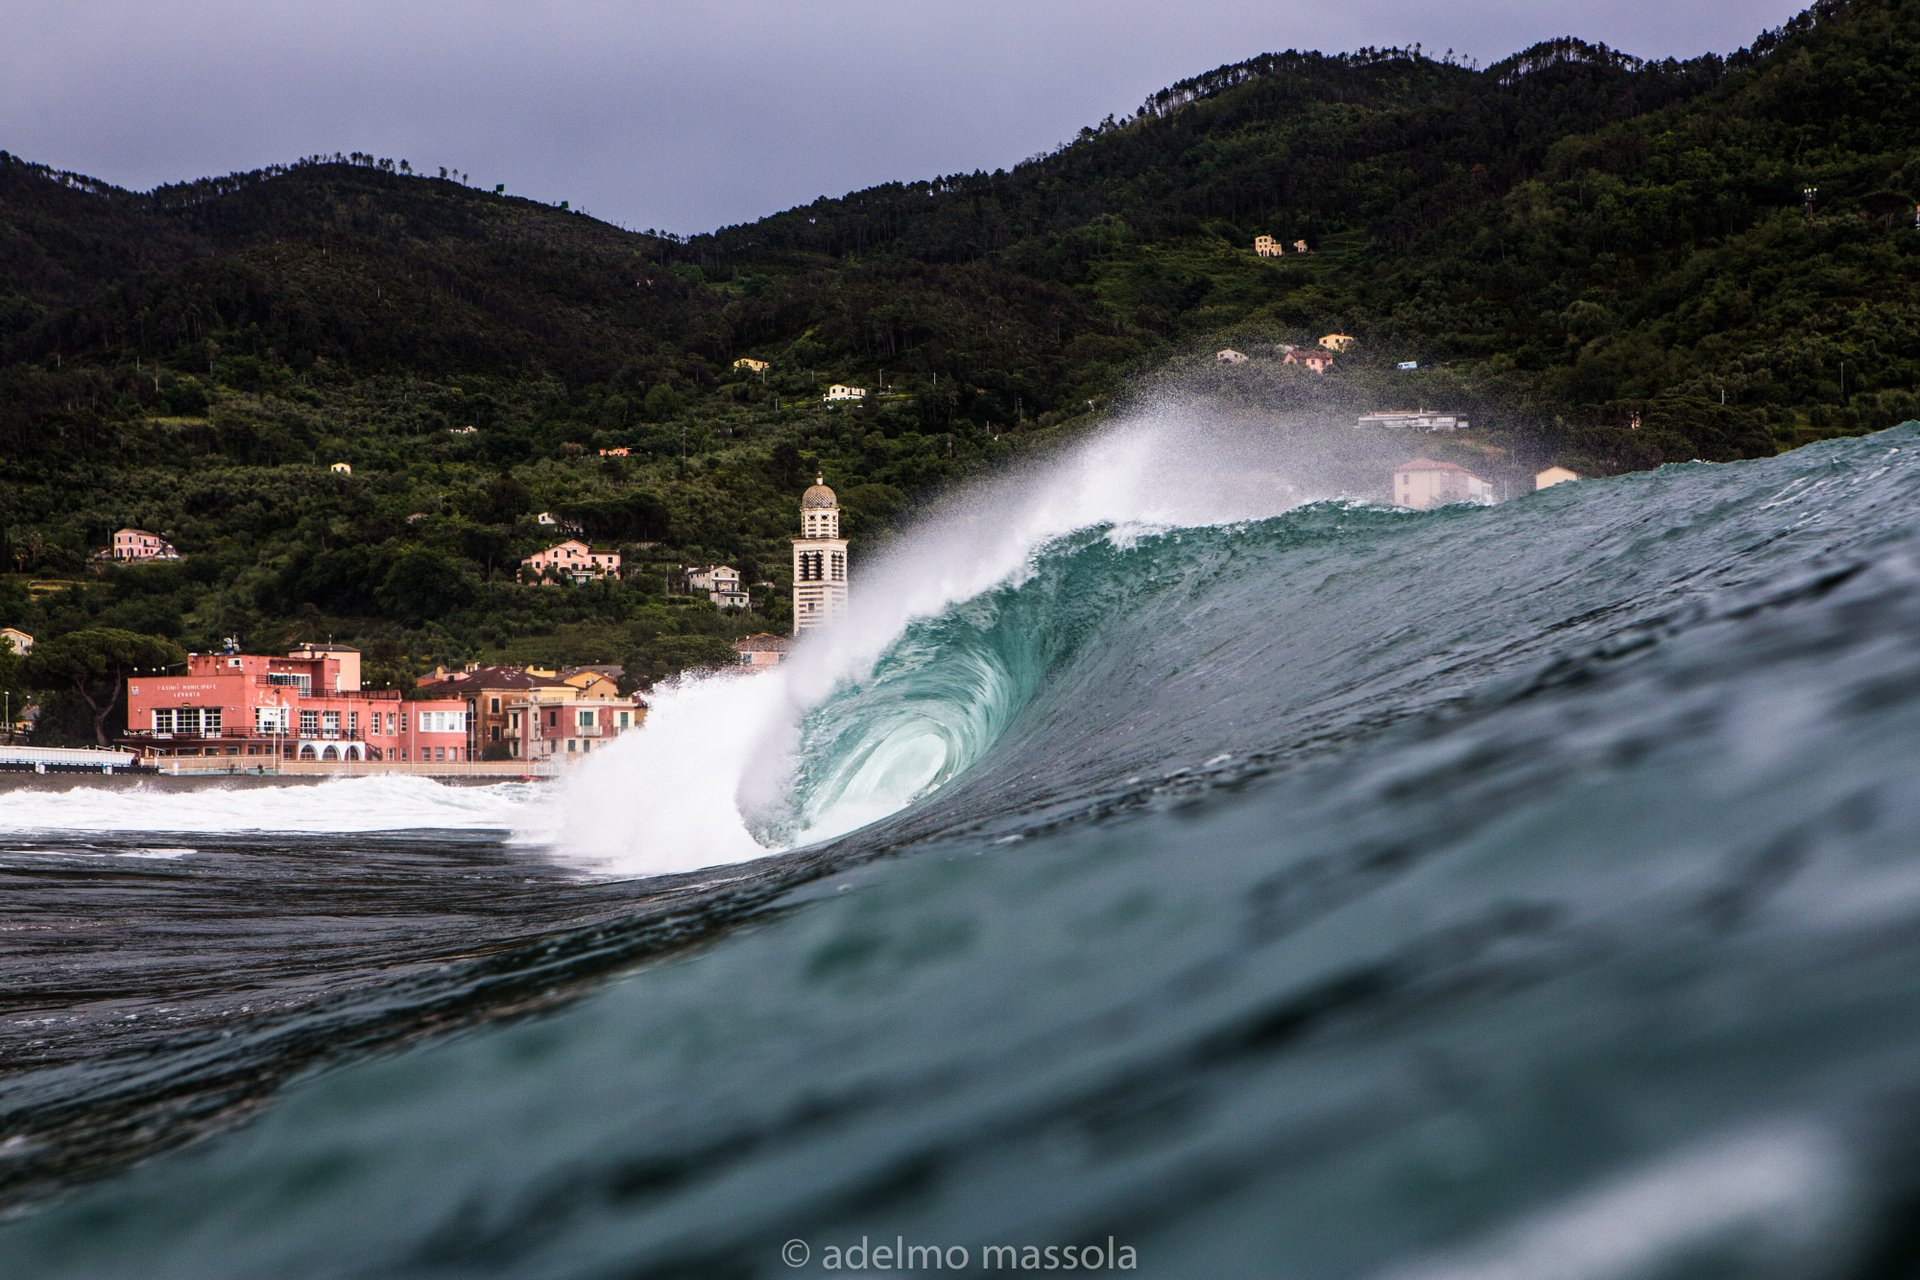 Adelmo Massola's photo of Levanto